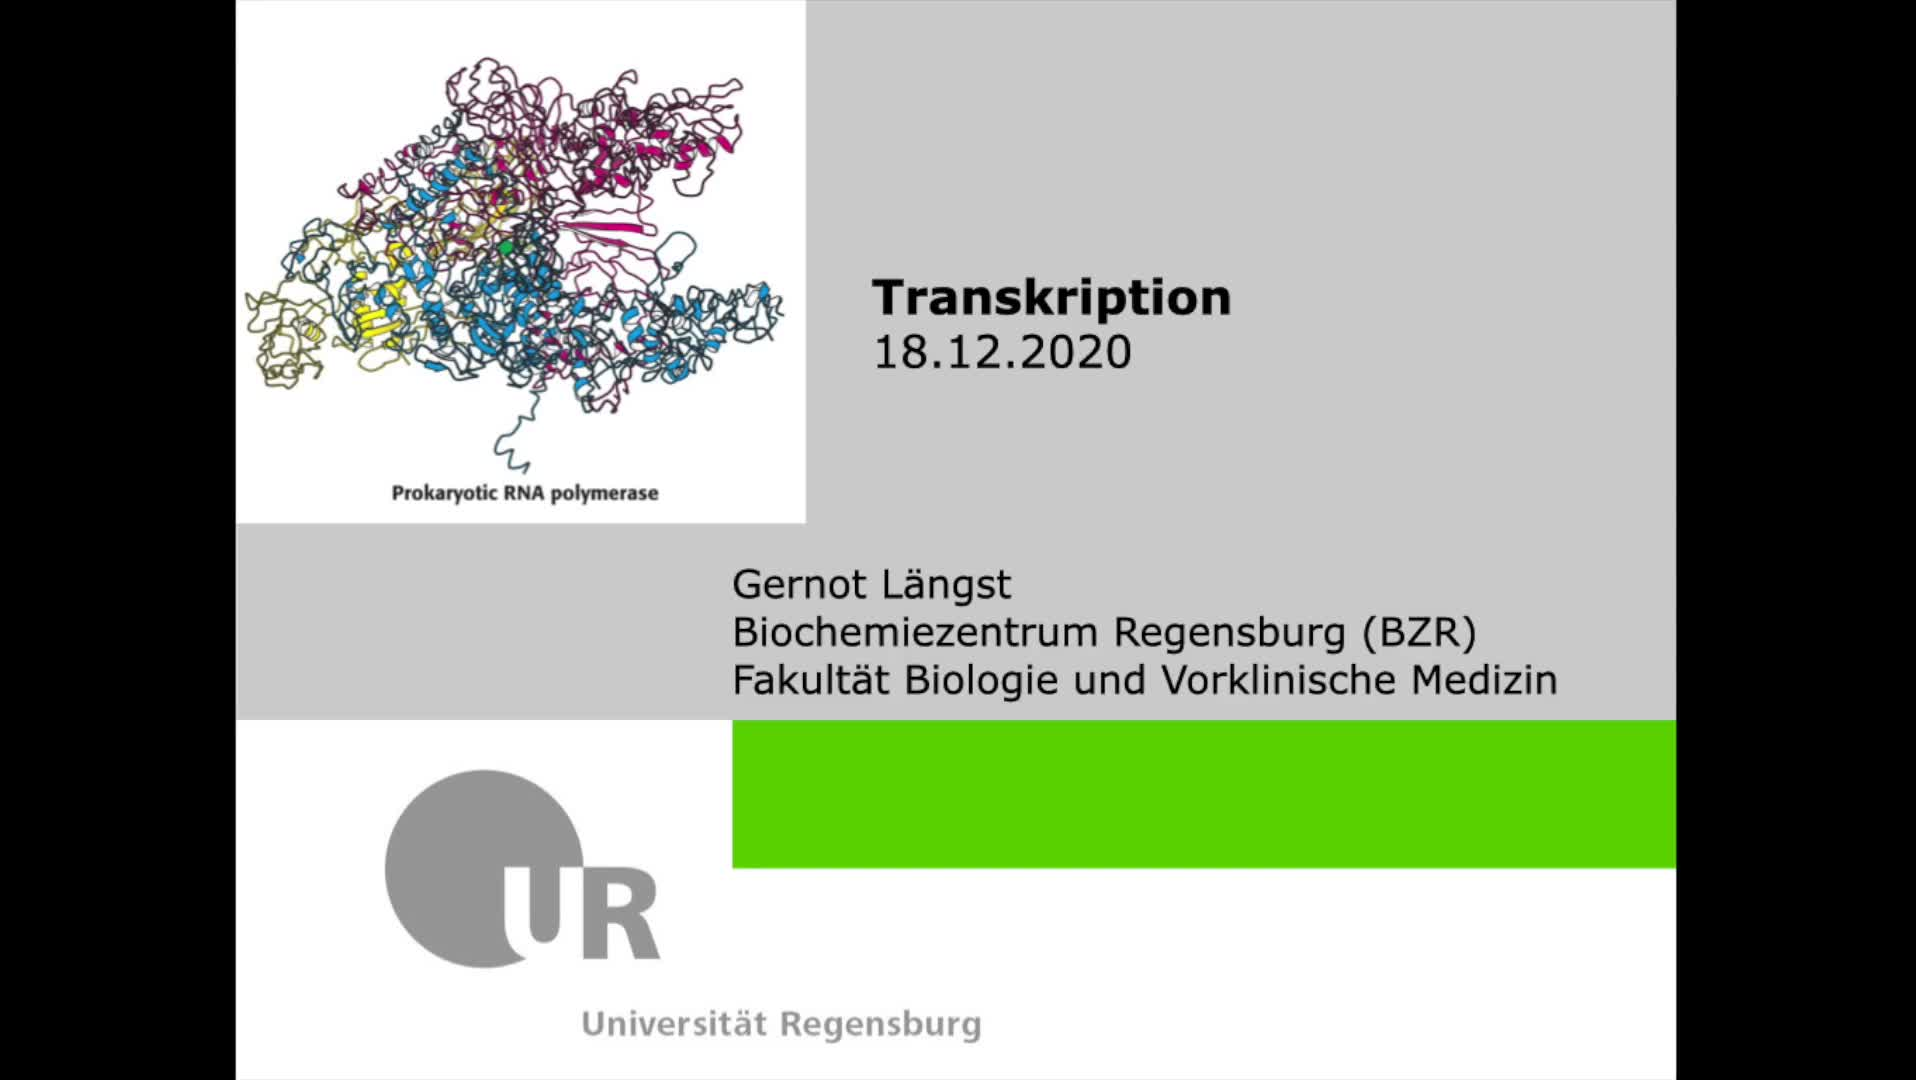 48 Transkription - Längst 18-12-2020